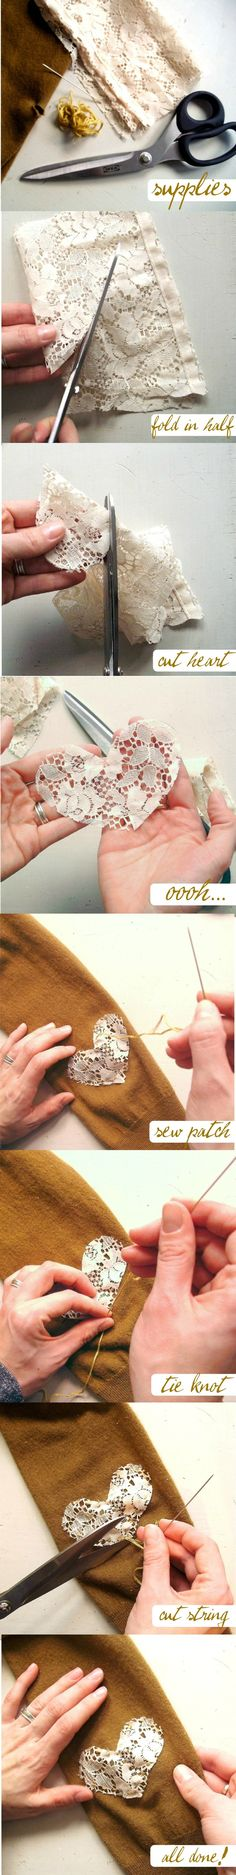 27 Useful Fashionable DIY Ideas, DIY: pretty lace detail- some other cute stuff, including non clothing diy